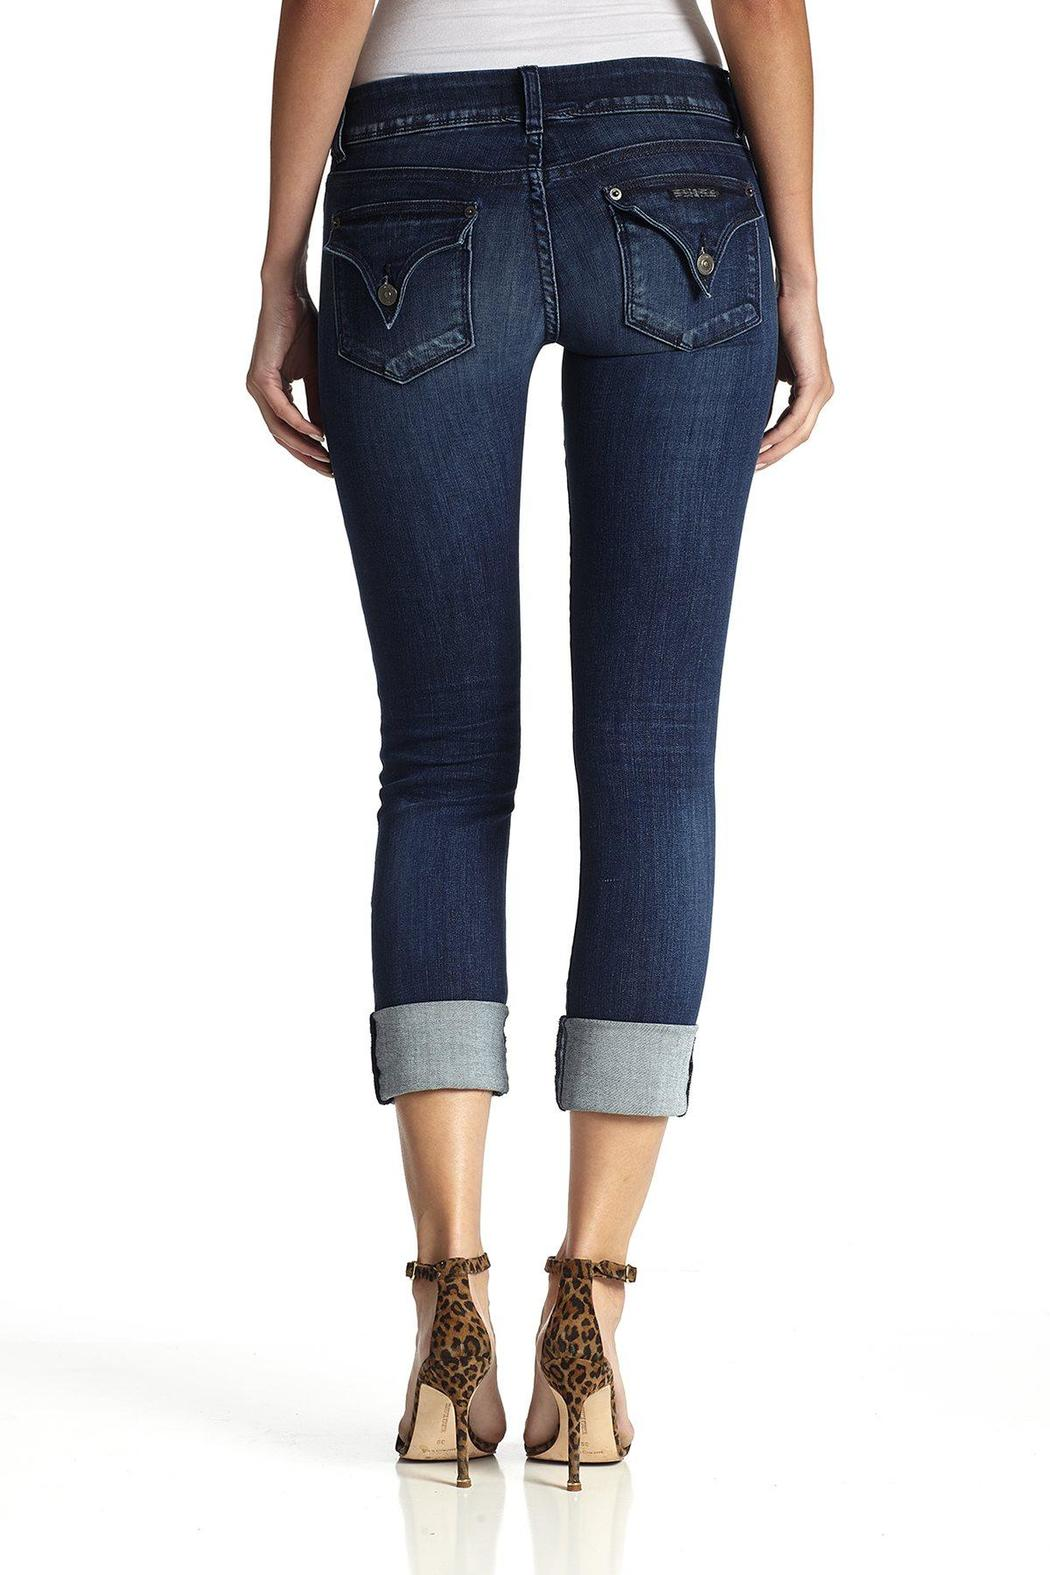 0897e6d32b2 Hudson Jeans Ginny Crop Straight from California by Tiger Lily's ...